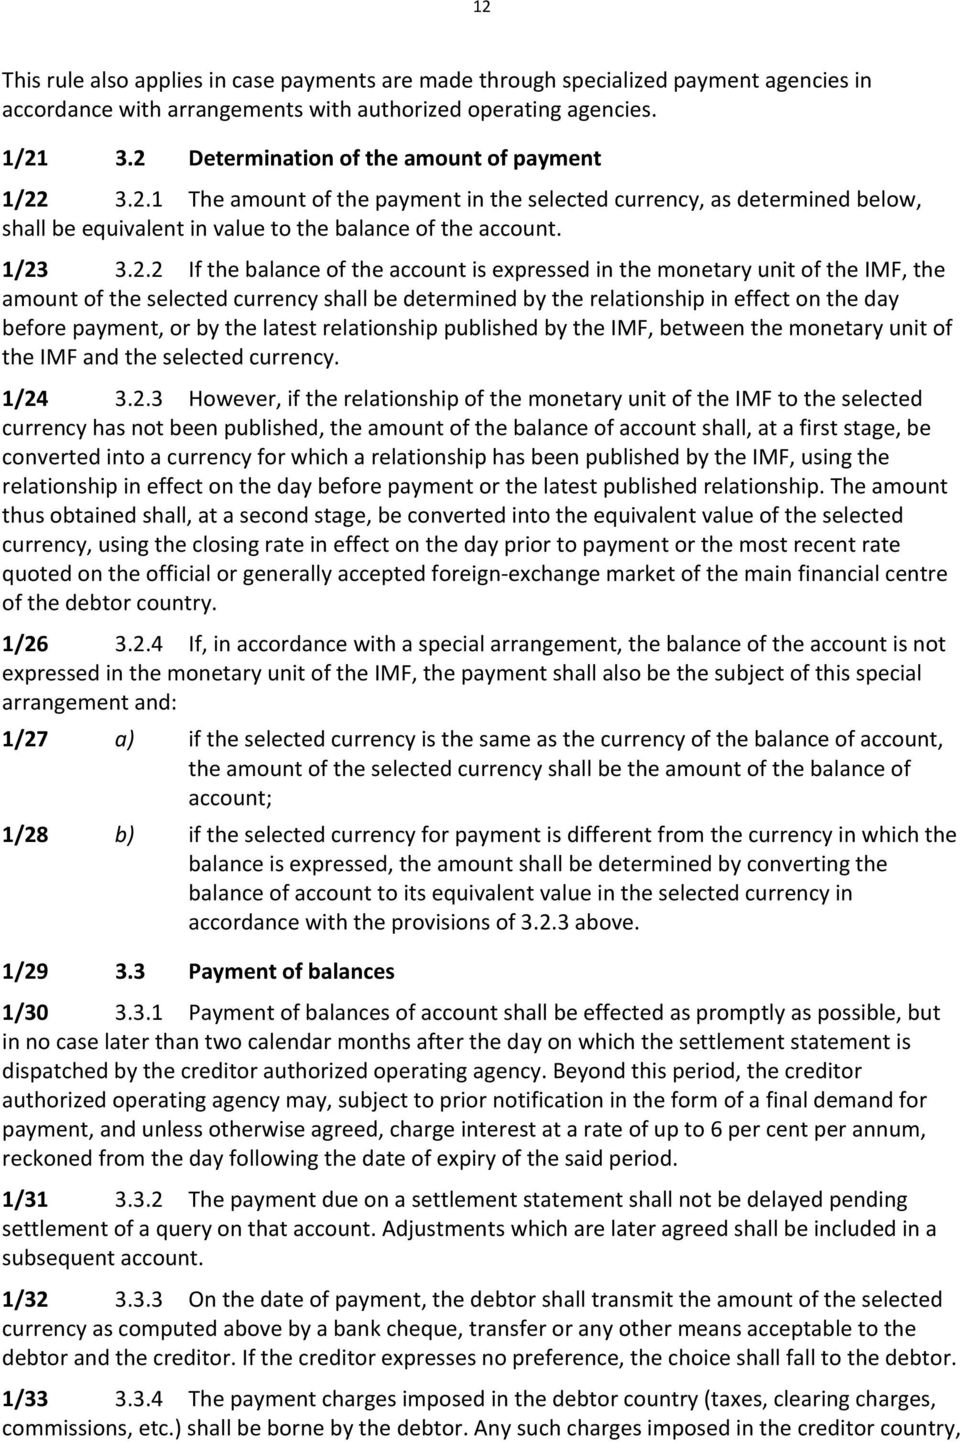 the balance of the account is expressed in the monetary unit of the IMF, the amount of the selected currency shall be determined by the relationship in effect on the day before payment, or by the